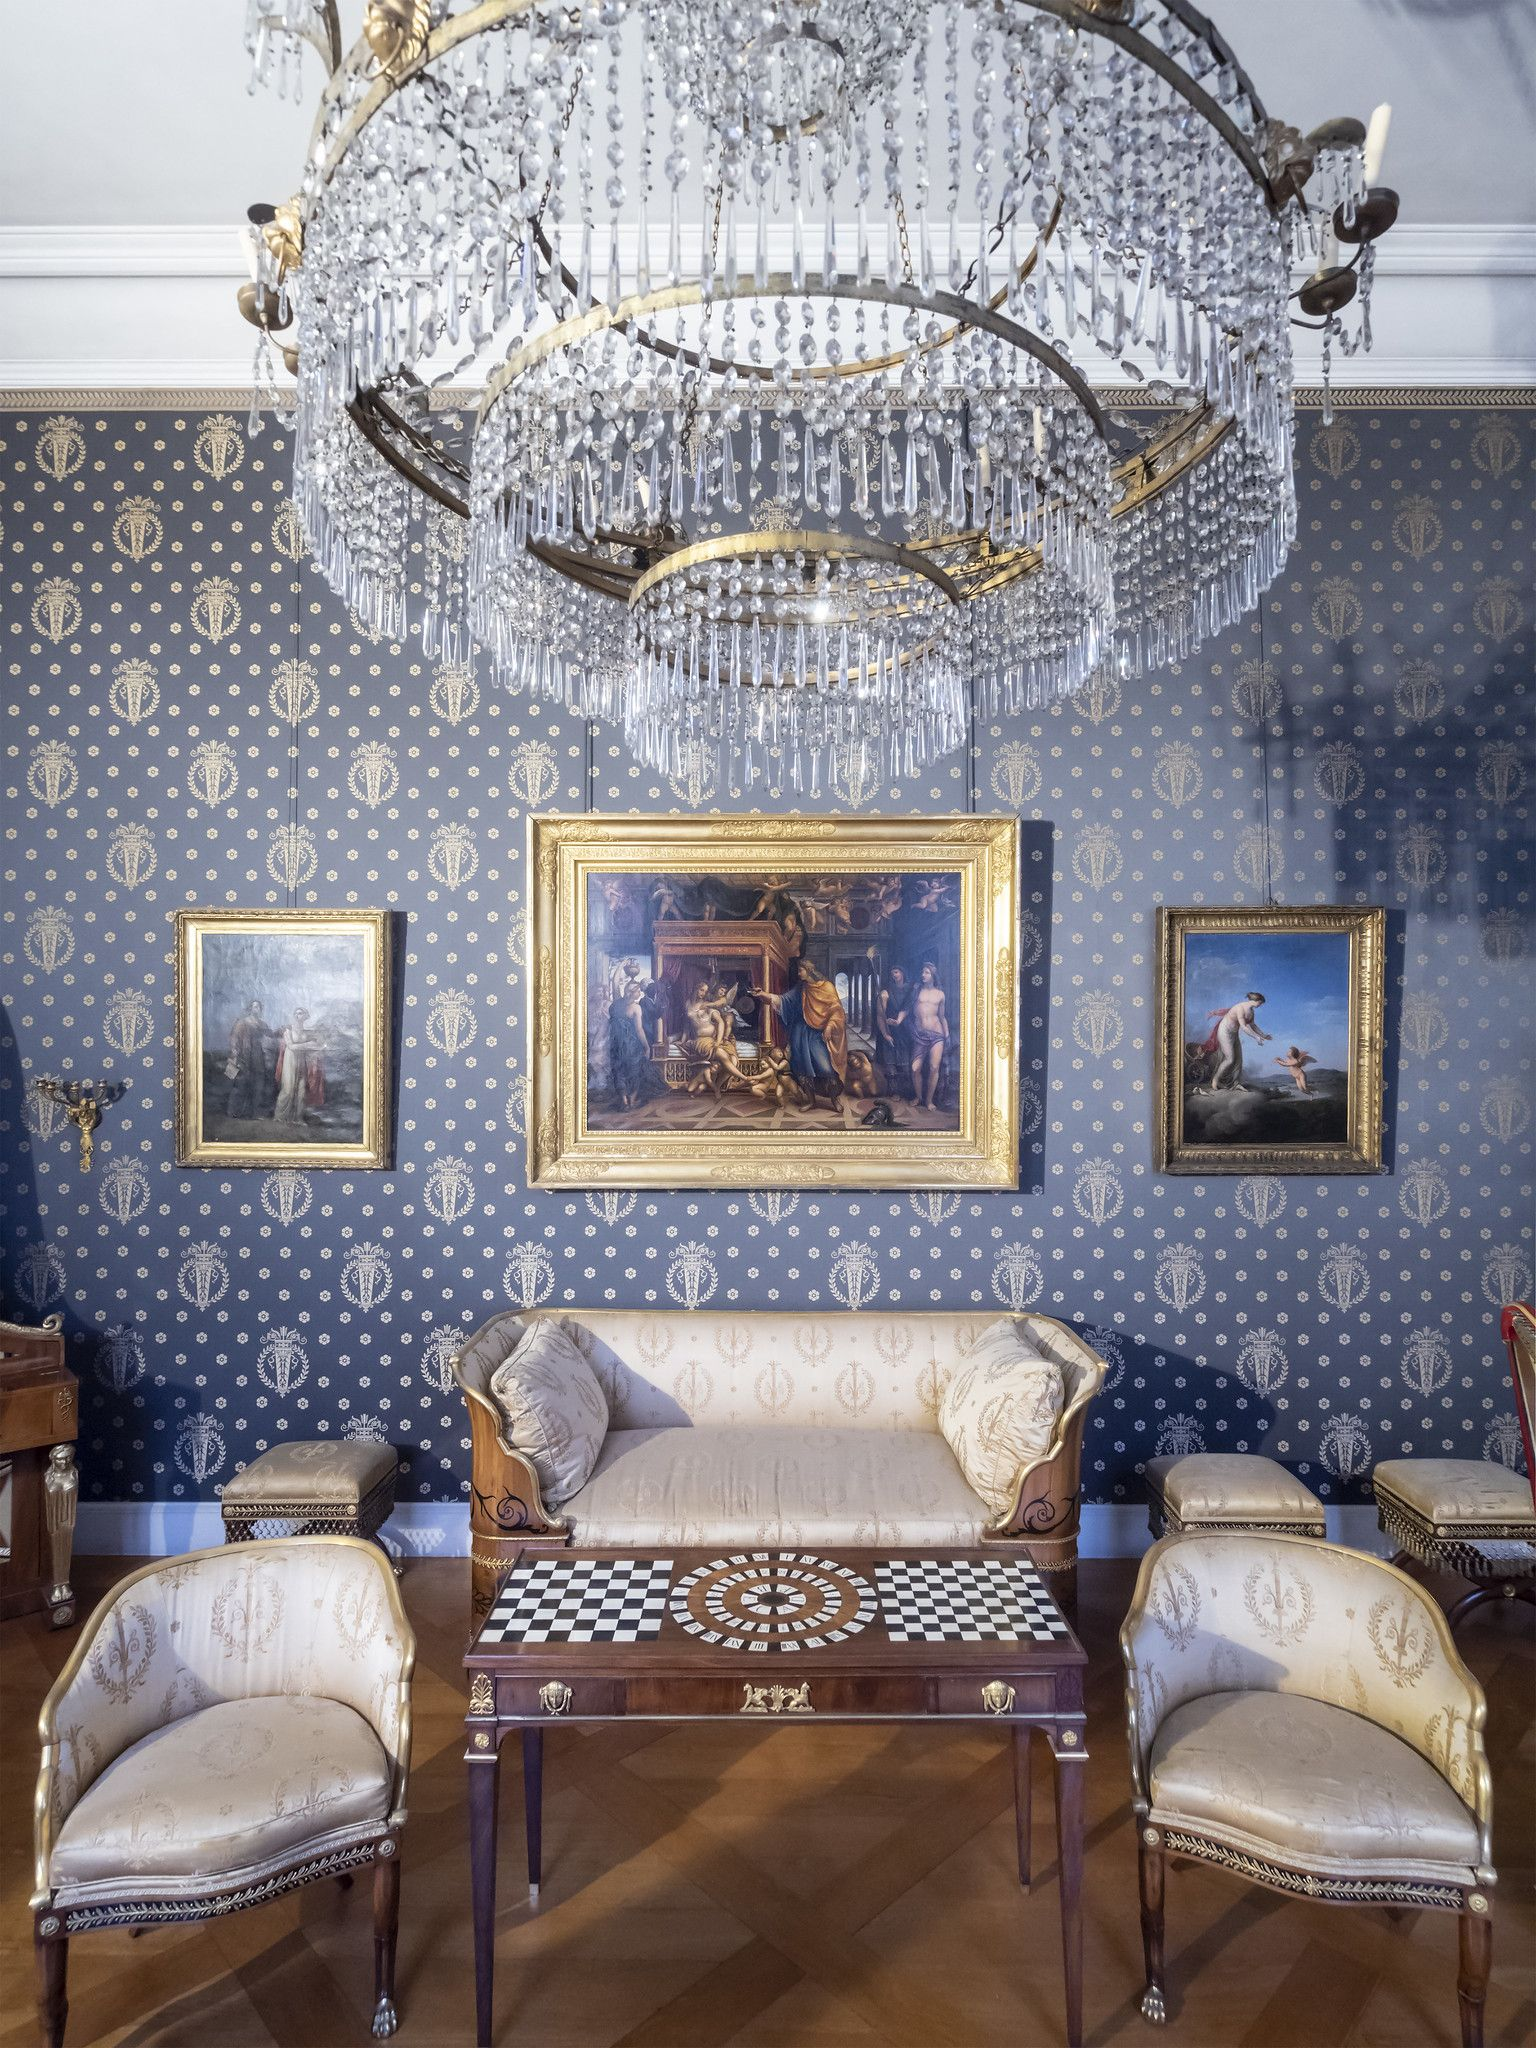 Munchen Residenz In 2020 Great Rooms Home Decor Decor